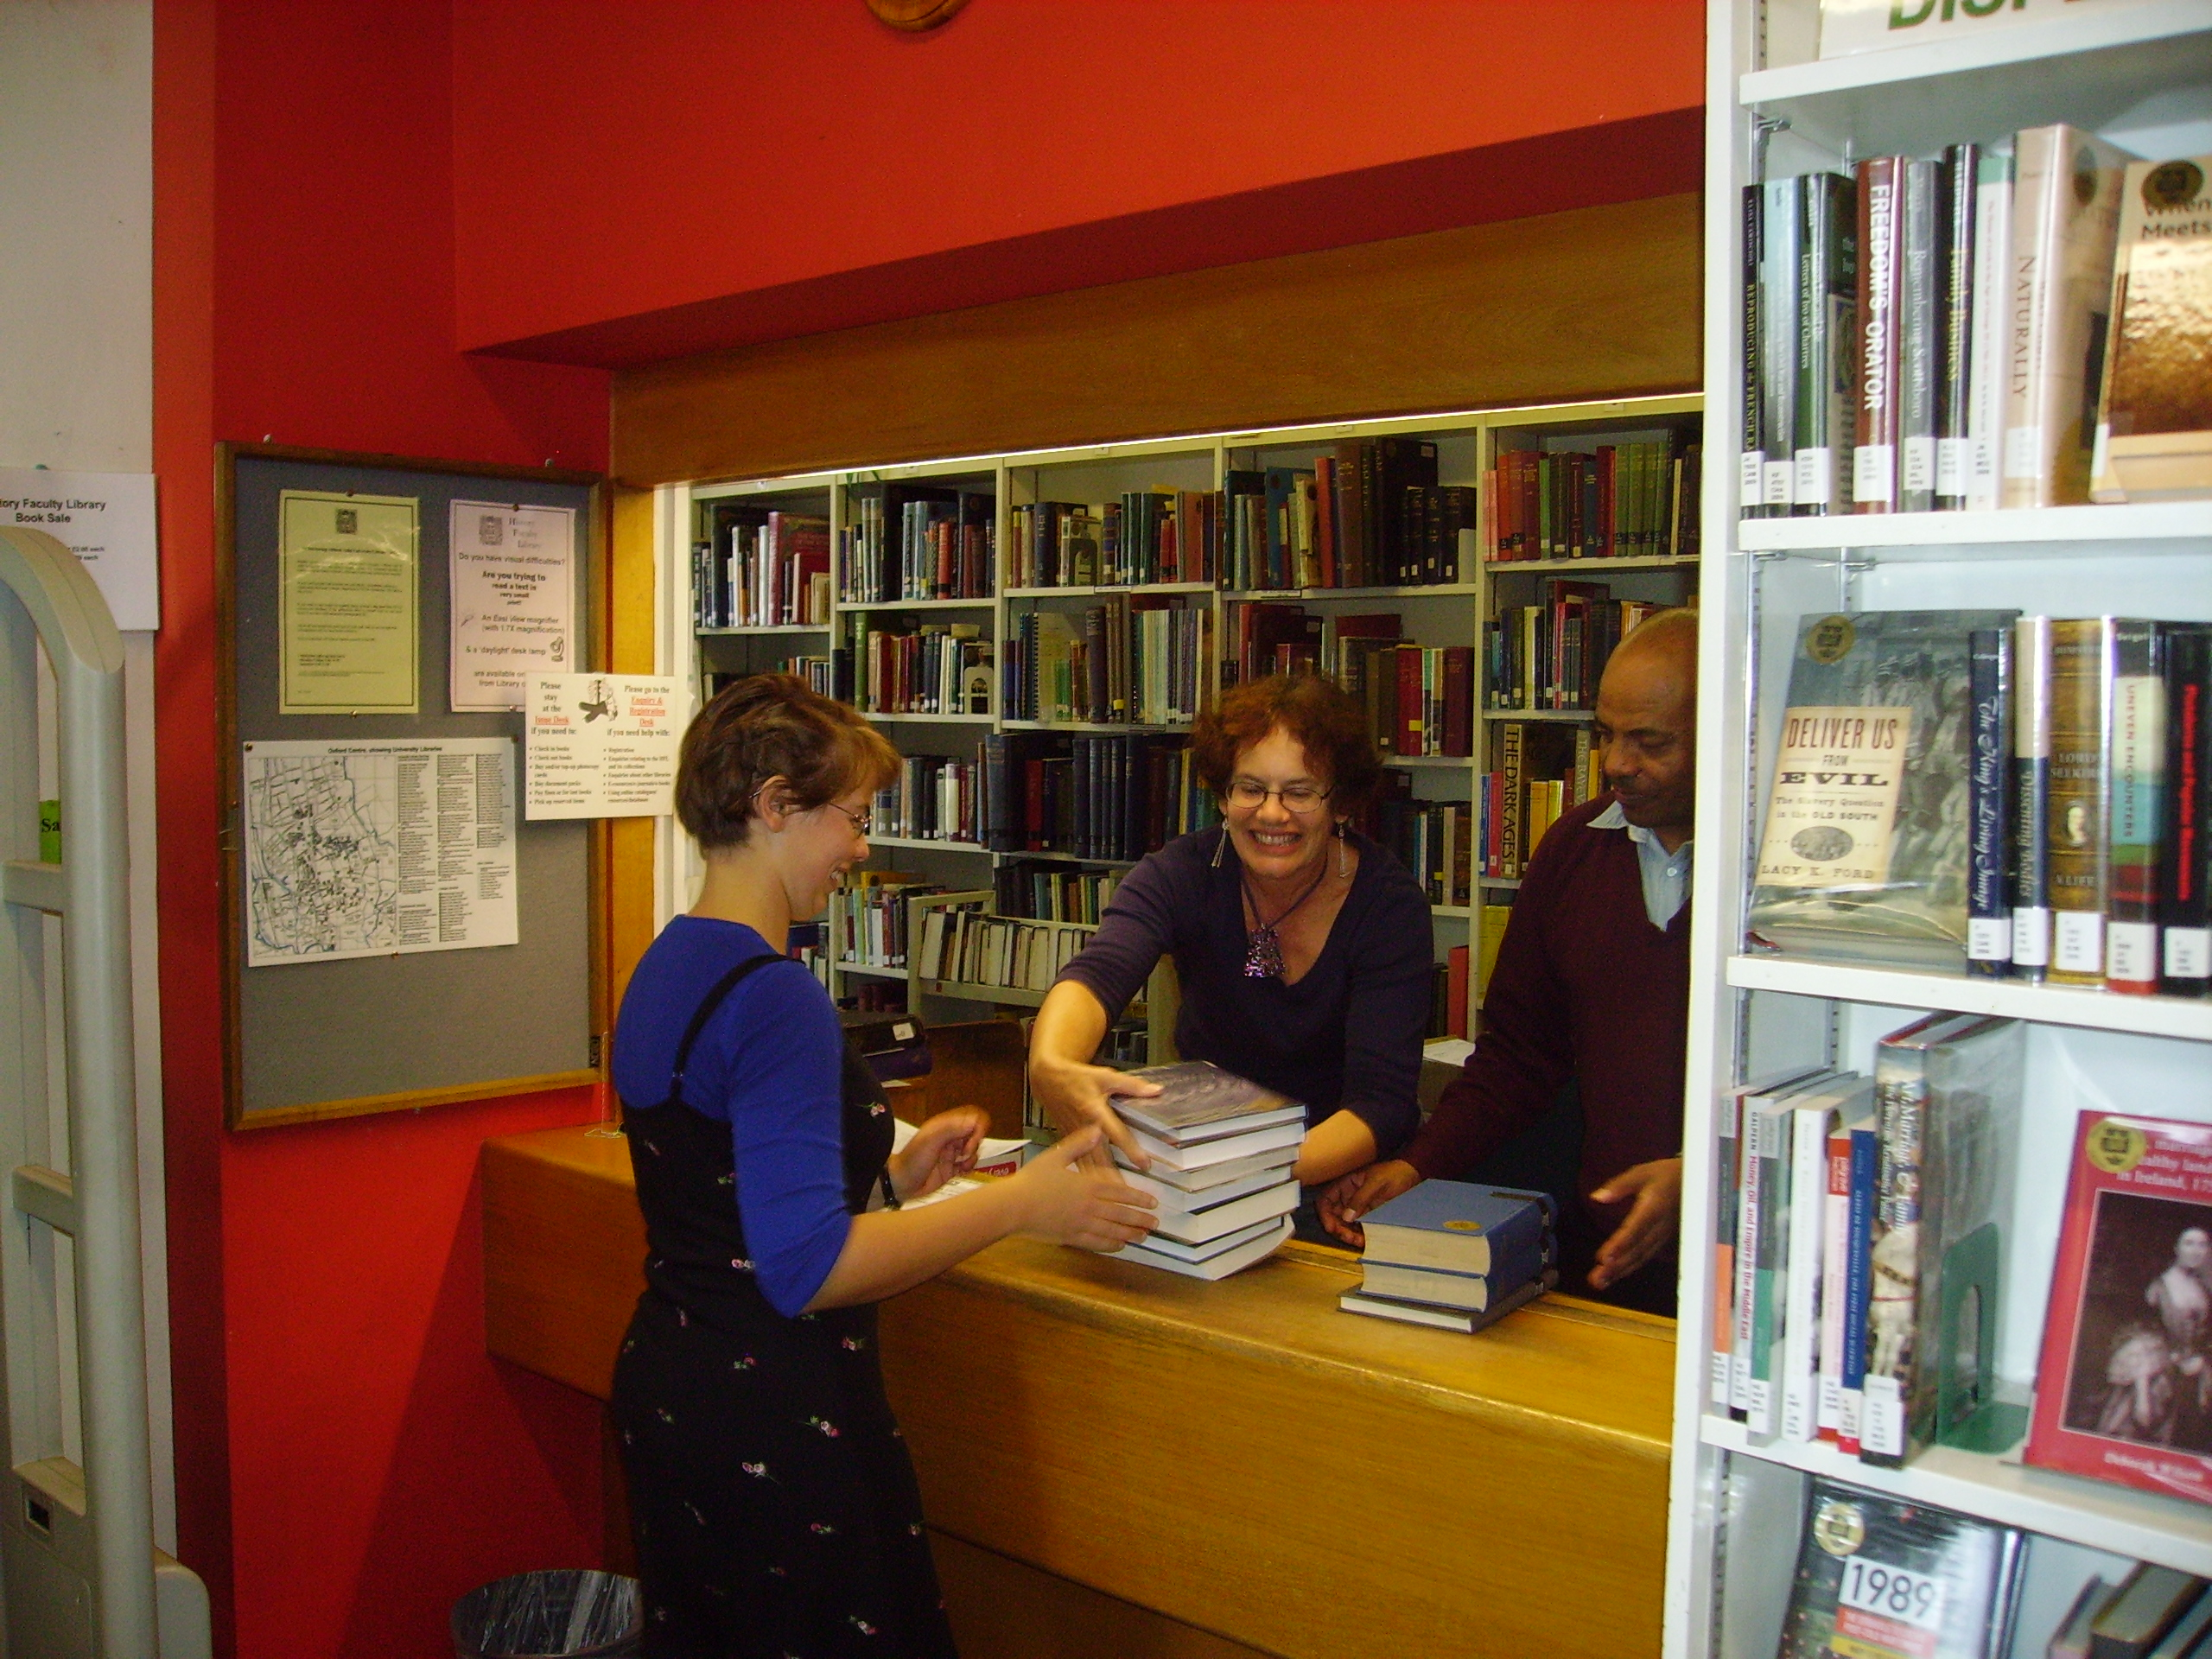 Picture of reader borrowing books at issue desk